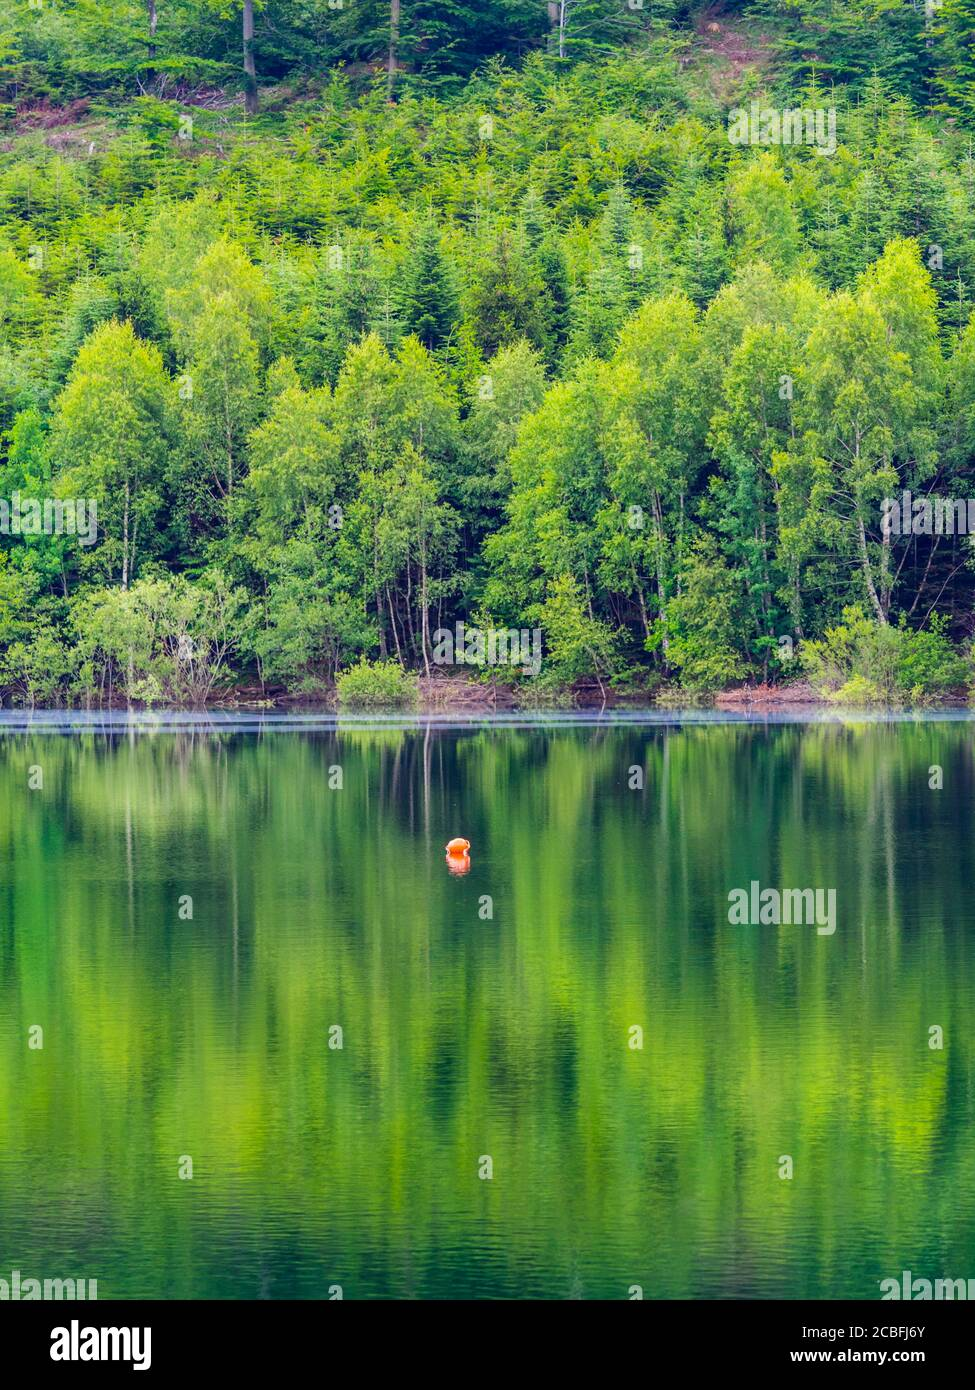 Green forest pretty beautiful preserved nature natural environment Spring season lake Lepenica near Fuzine in Croatia Europe Stock Photo